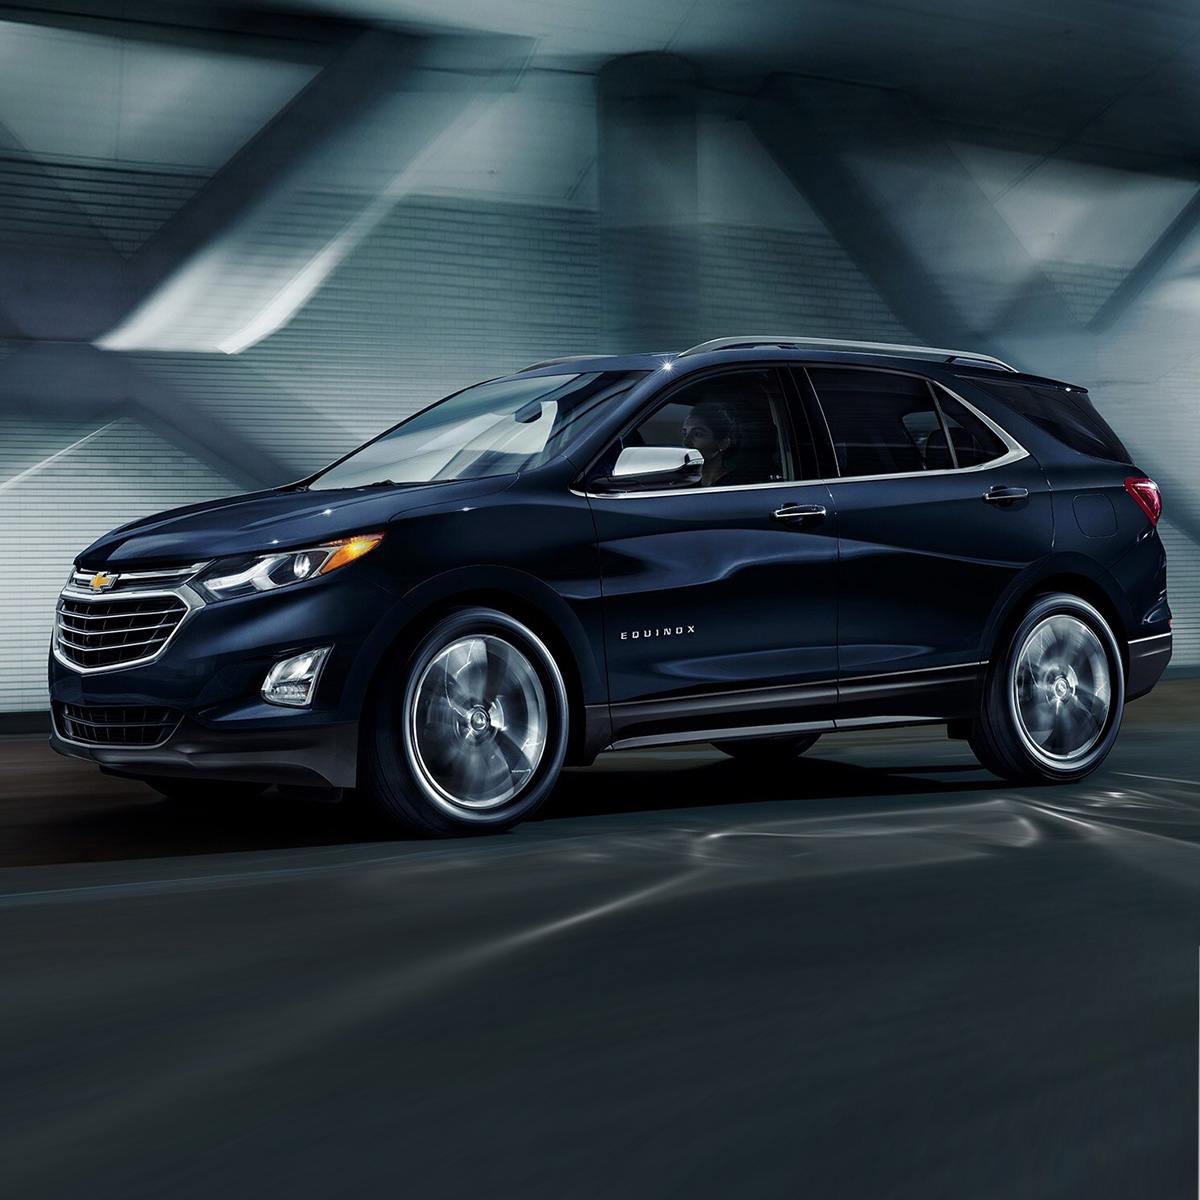 side profile of dark blue chevrolet equinox suv accelerating on the road